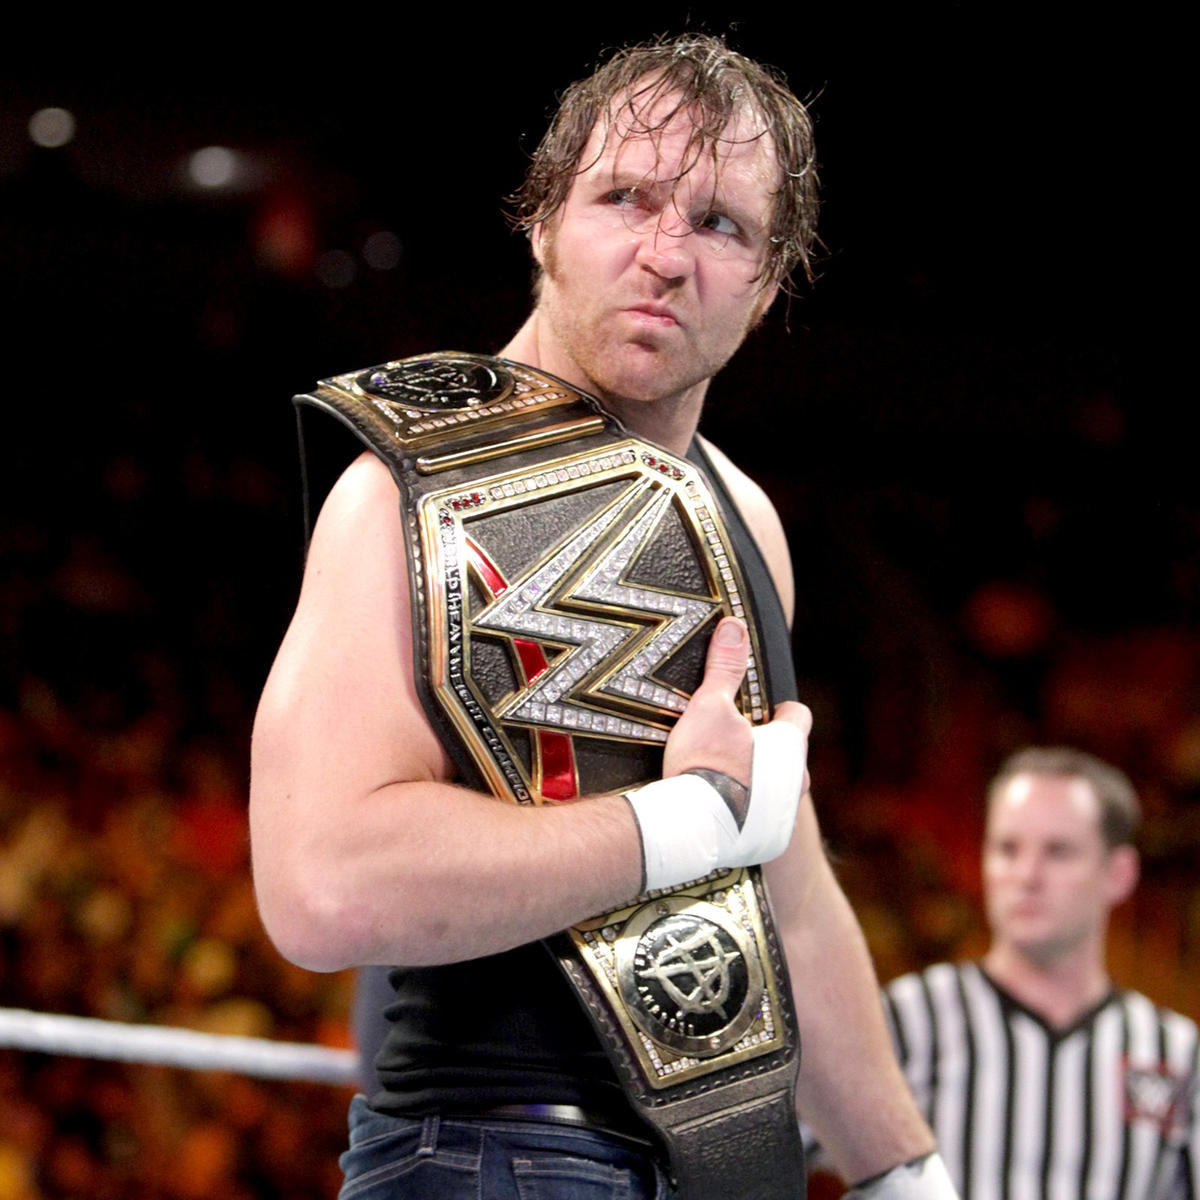 With the WWE Championship on his shoulder, Dean Ambrose is ready for the match ...